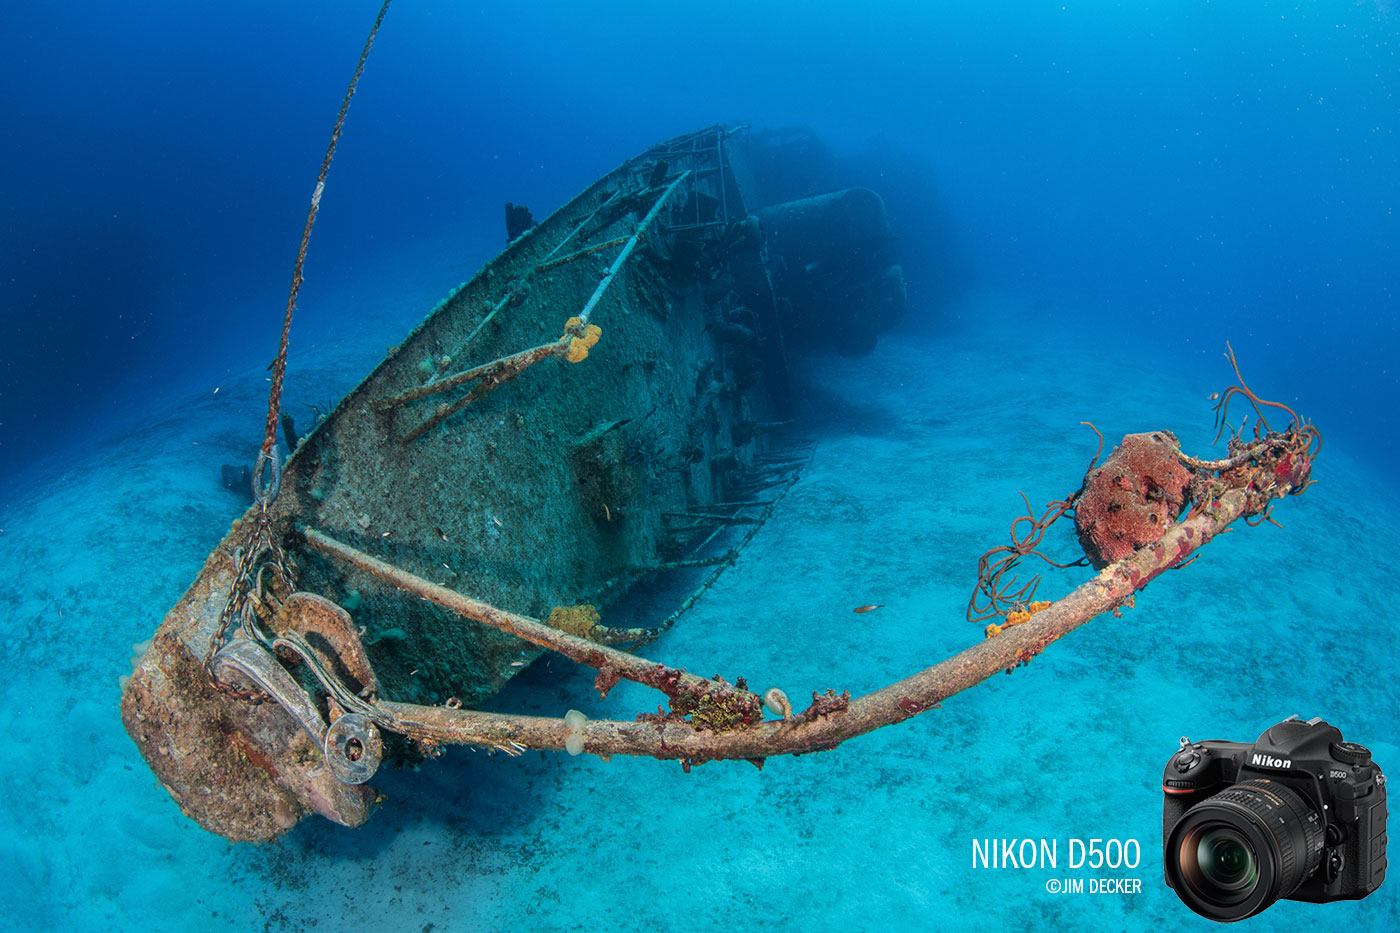 Nikon D500 Underwater Camera Review